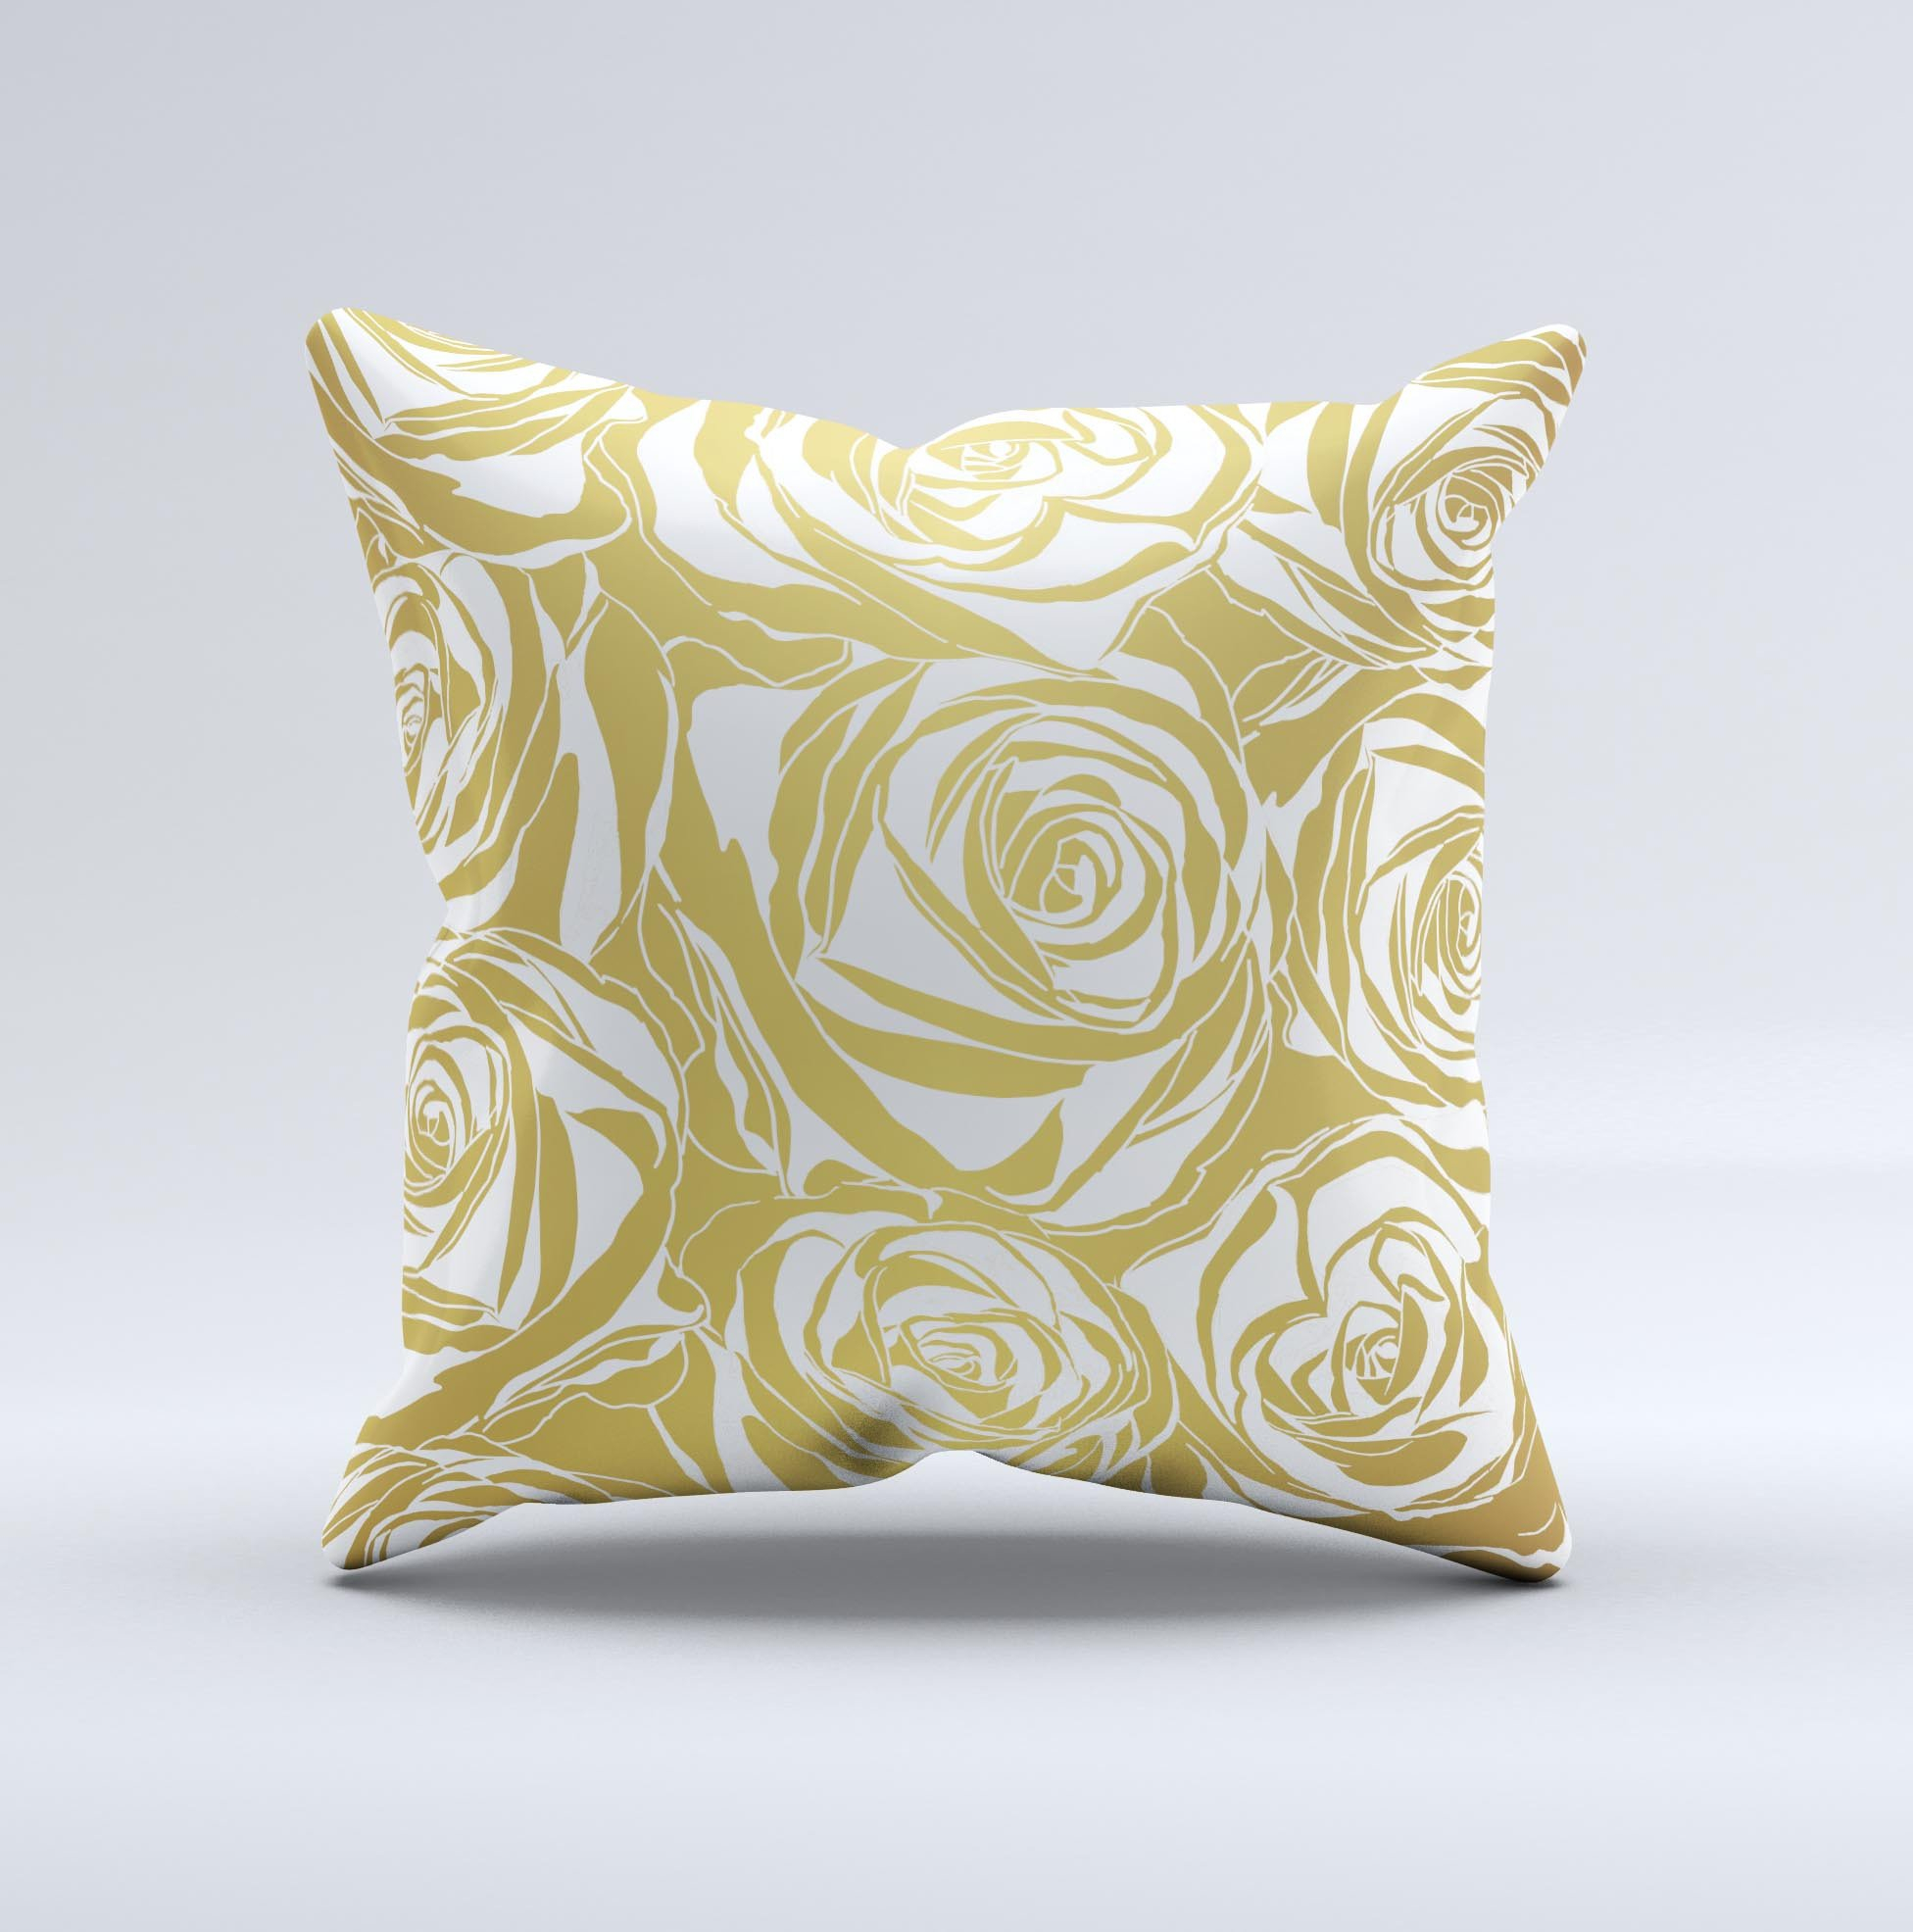 Image of The Gold and White Roses ink-Fuzed Decorative Throw Pillow